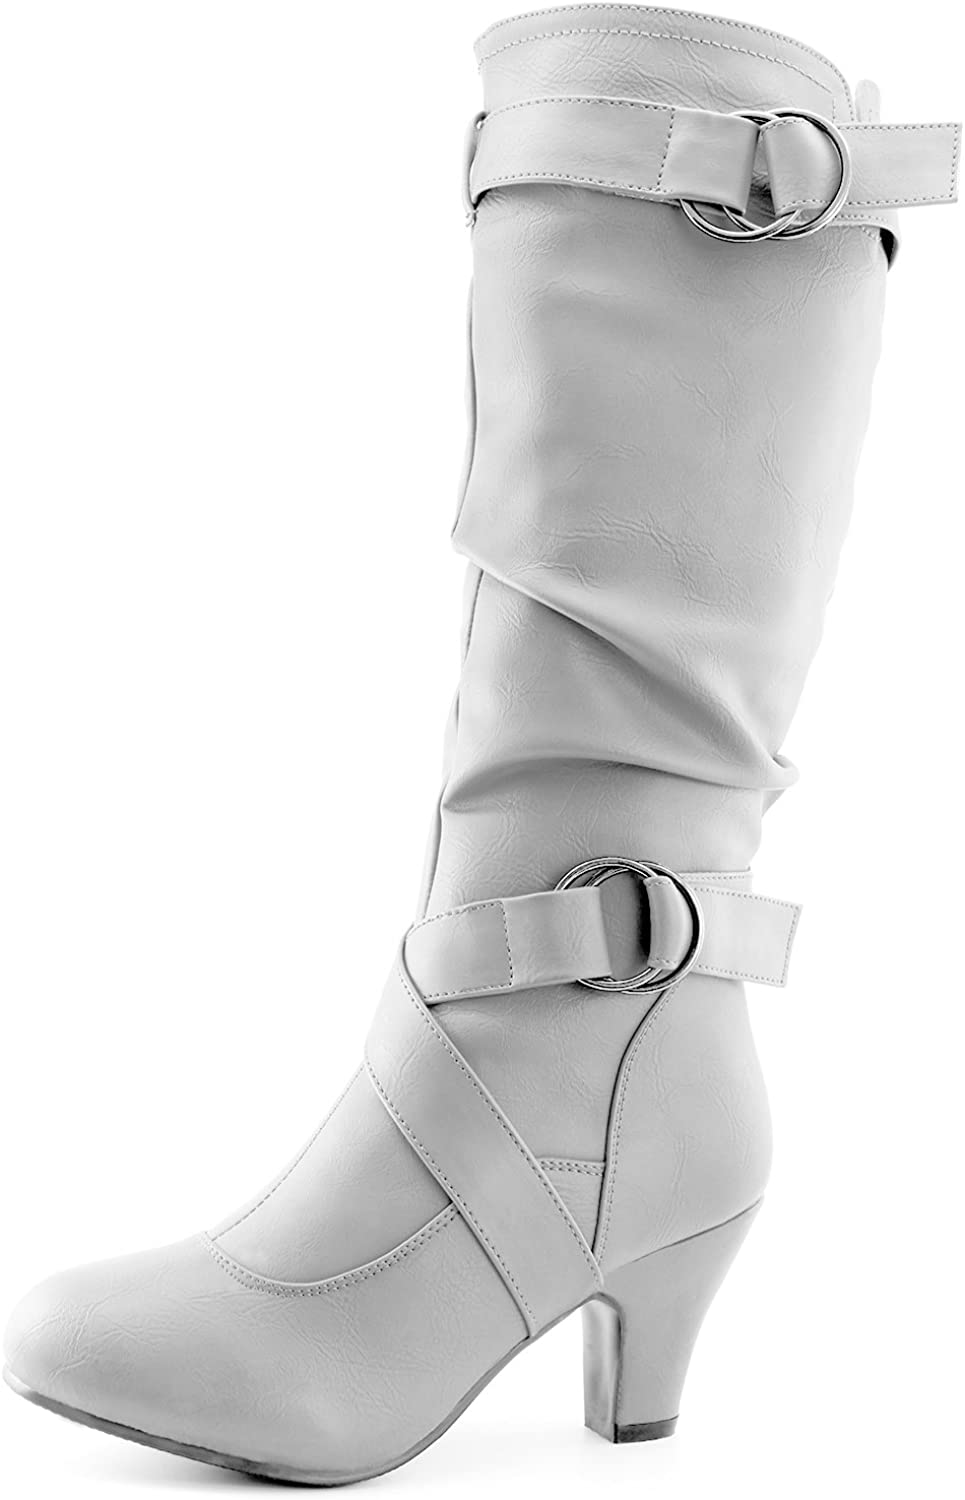 Dailyshoes Women's Mid Calf Ankle Strap Slouchy Fashion Boots, White Pu, 6 B(M) US